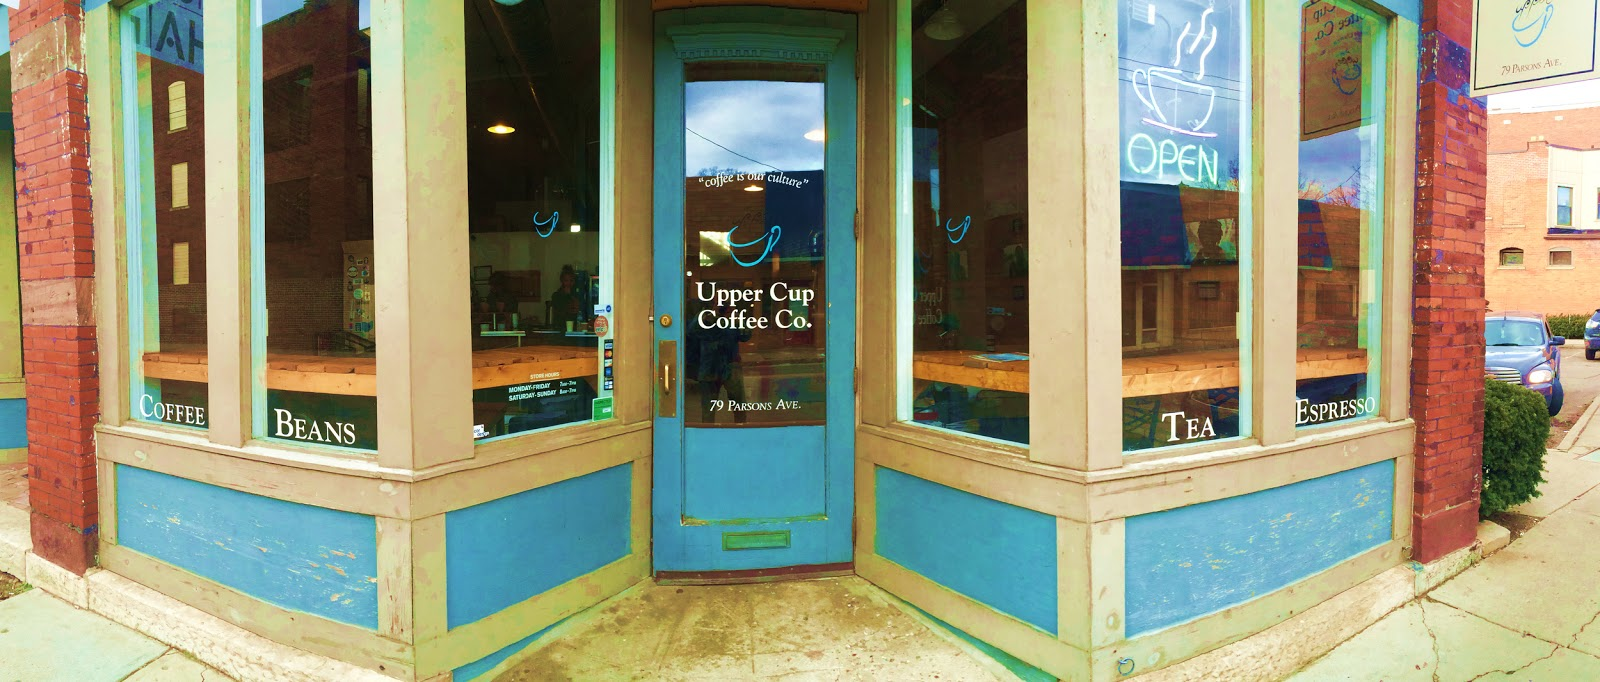 Upper Cup Coffee storefront on Parsons Ave. Columbus